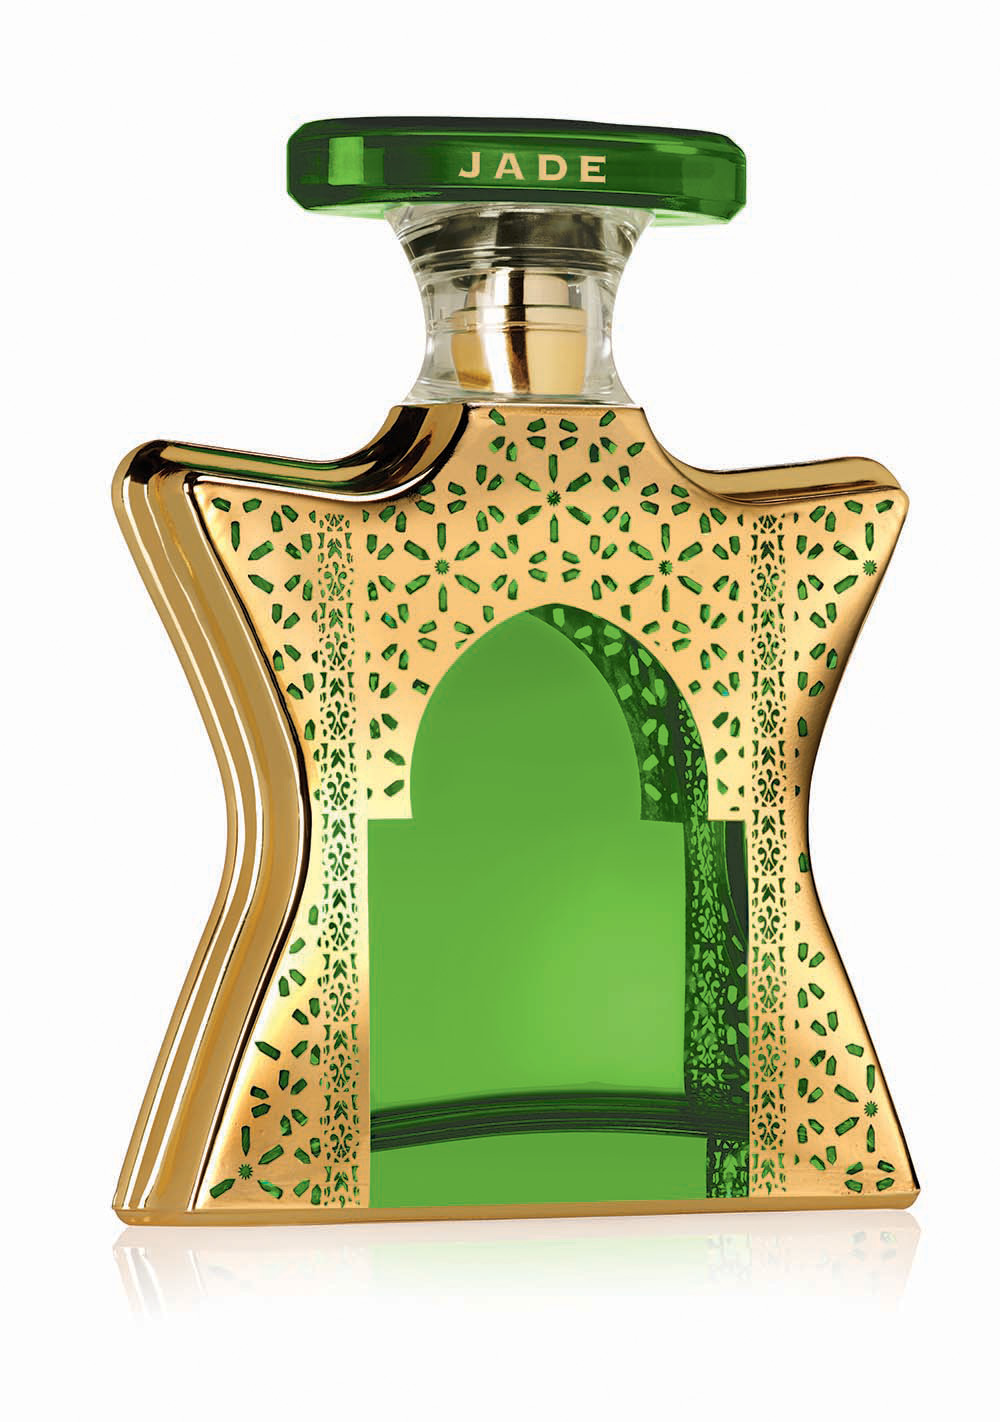 Vibrant and high-energy, Dubai Jade blends sparkling florals with languid incense.